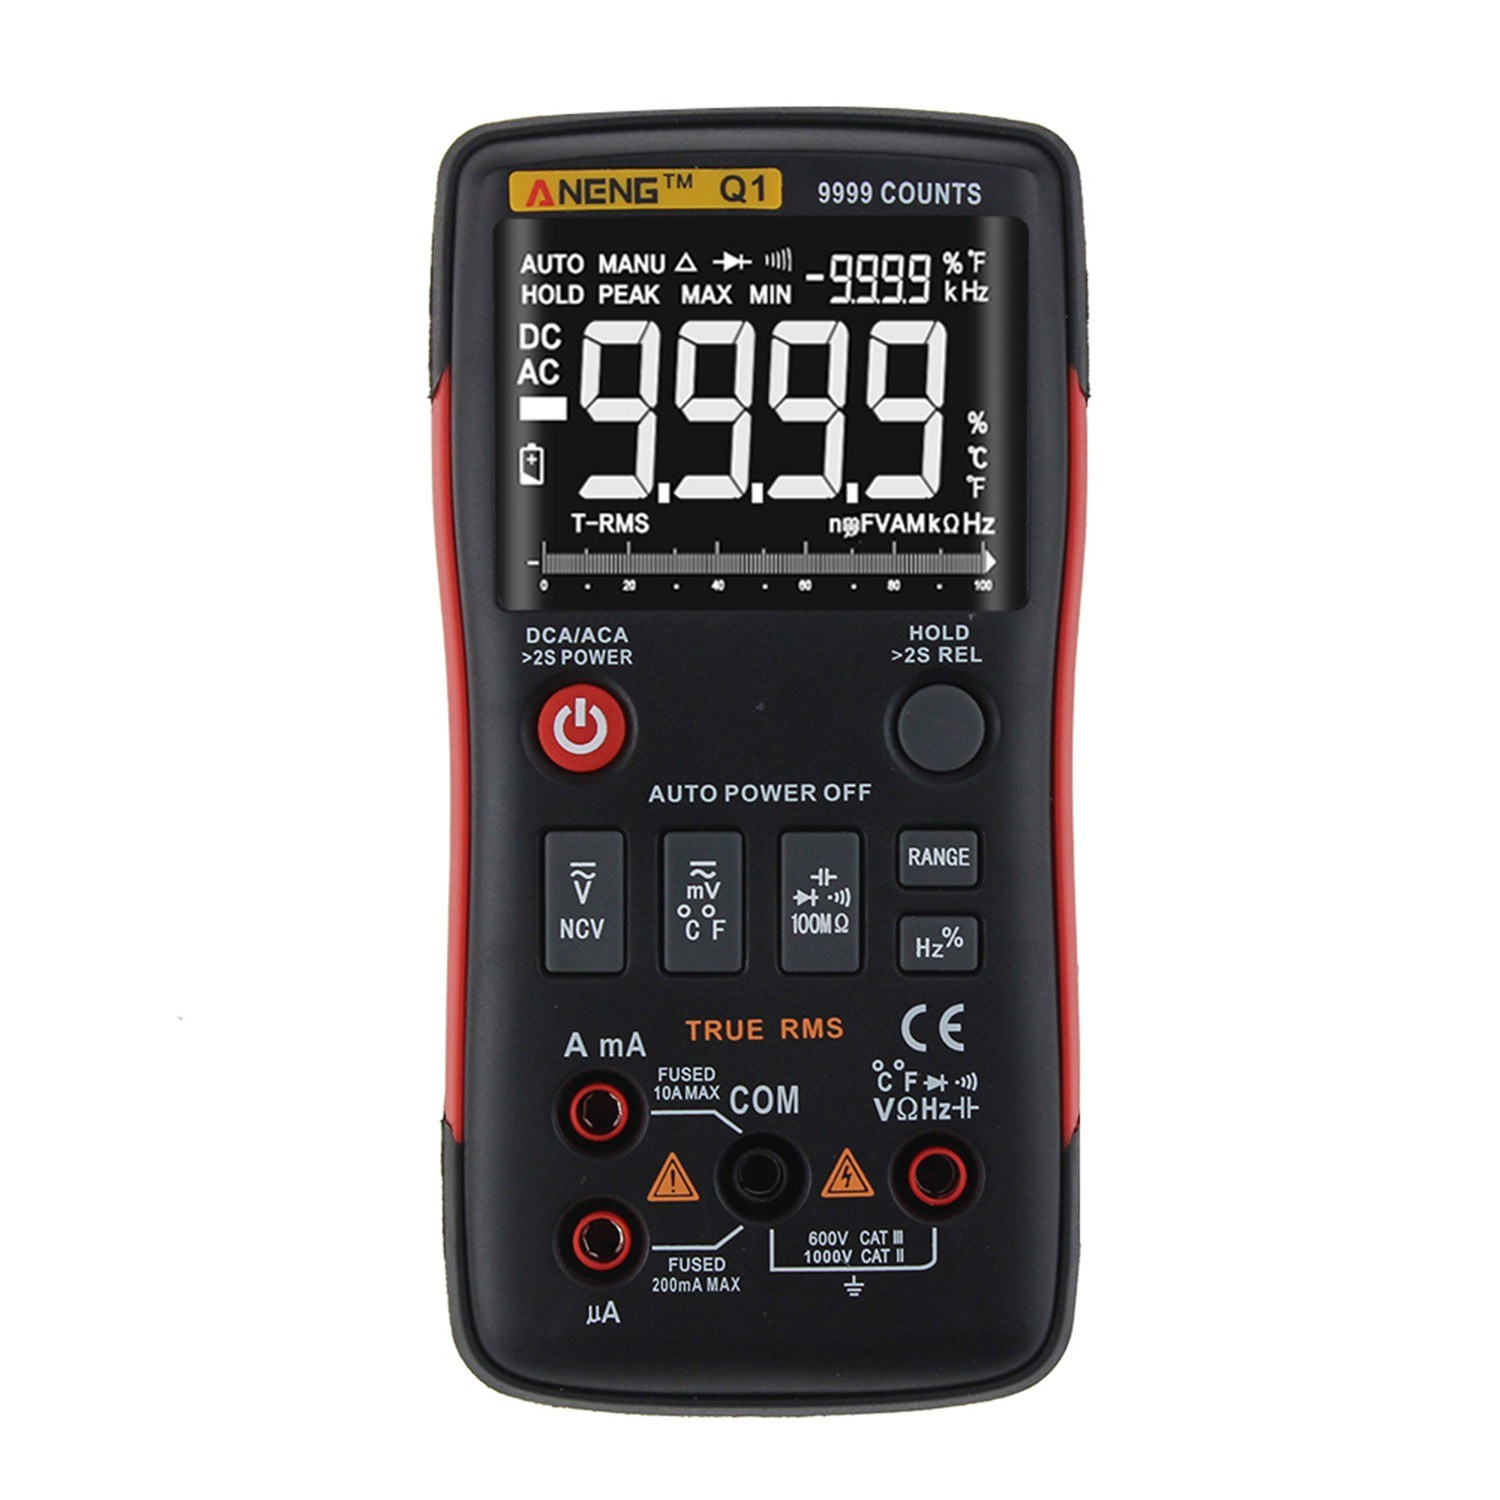 ANENG 9999 Counts True RMS Multifunctional Digital Multimeter Voltmeter Ammeter Handheld Mini Universal Meter High Accuracy Measure AC/DC Voltage AC/DC Current Resistance Capacitance Frequency Duty Cycle Temperature Diode Tester